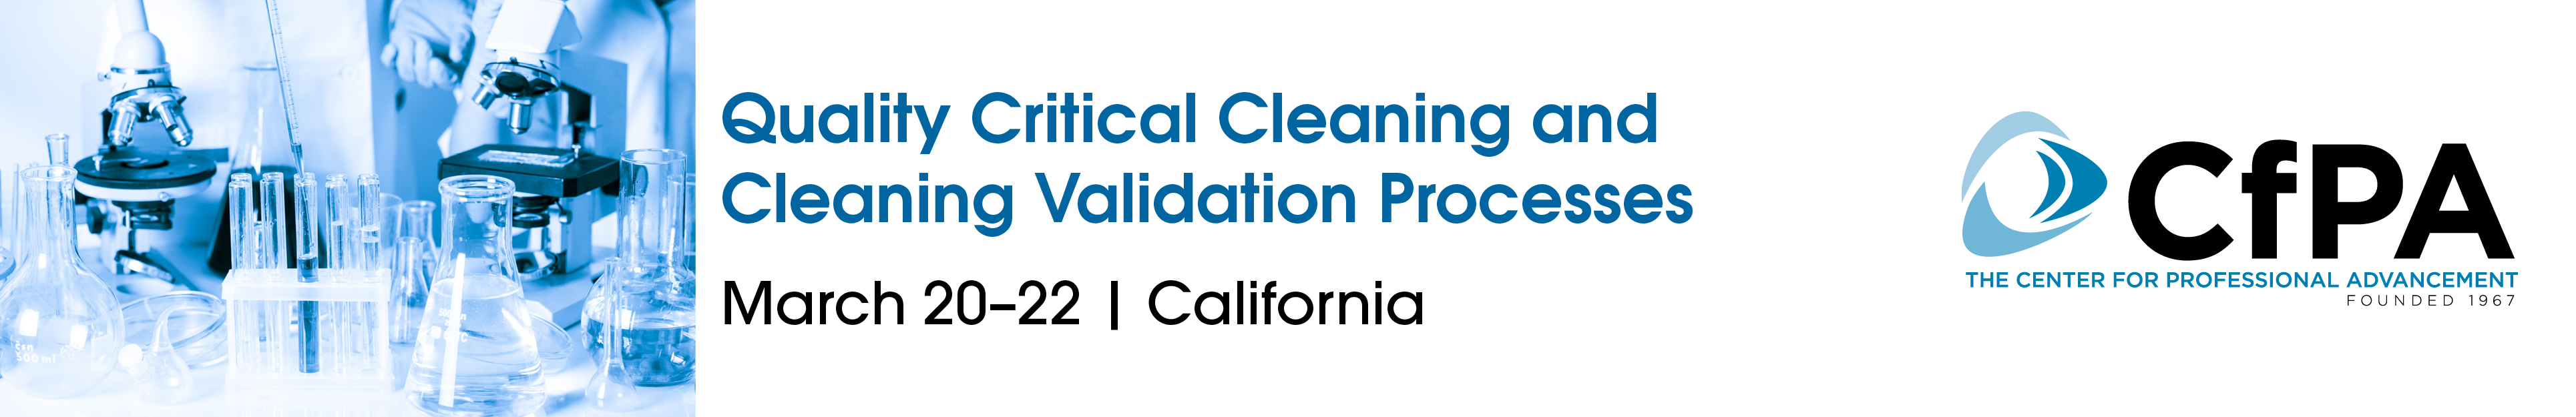 Quality Critical Cleaning and Cleaning Validation Processes